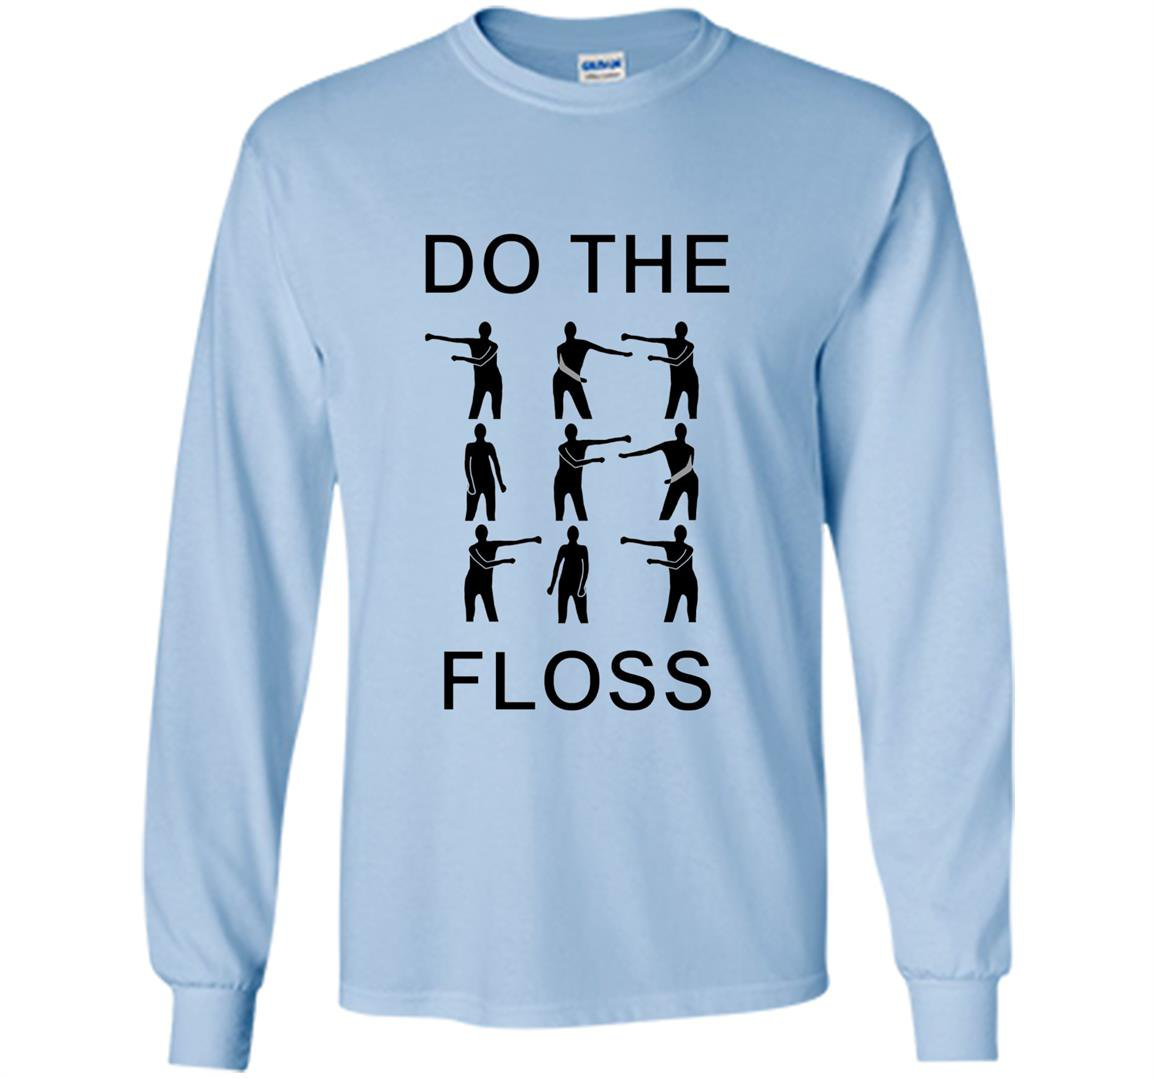 Do the floss dance instructional Long Sleeve